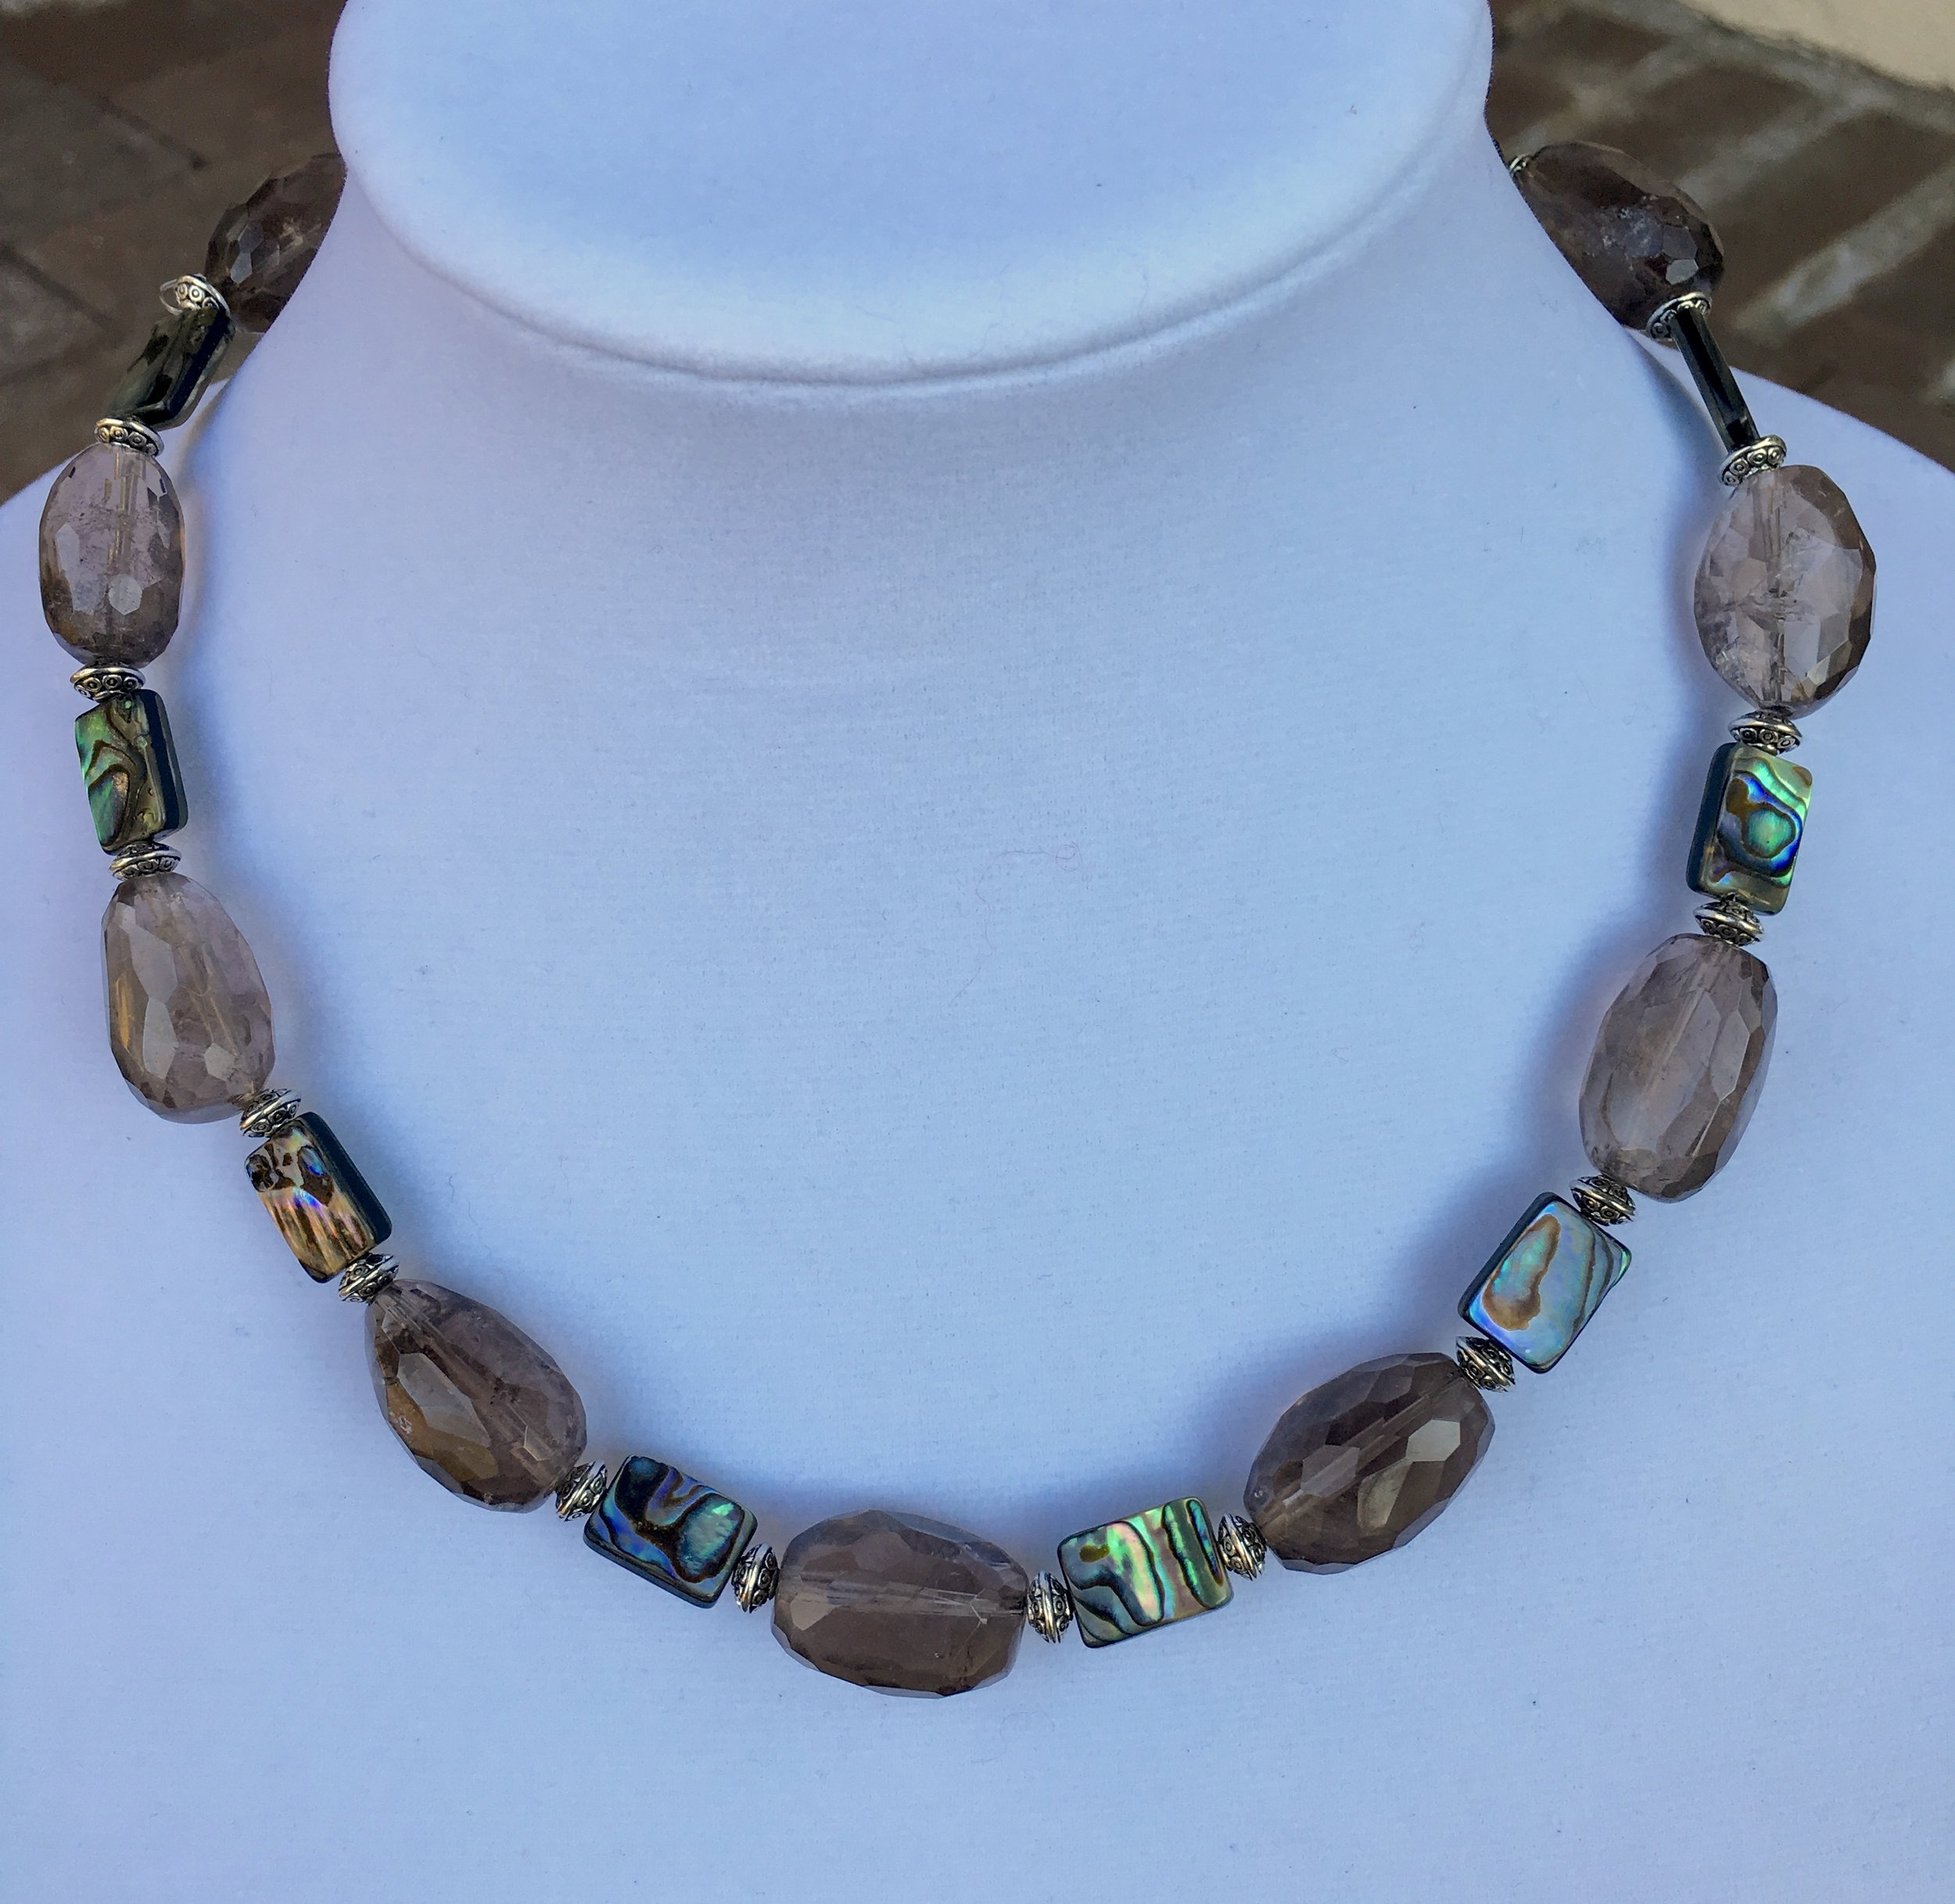 smoky quartz with abalone necklace  12 x 24 mm faceted oval smoky quartz beads. 10 x 14mm rectangular abalone beads. Silver plated beads. Sterling silver clasp. 20 in. $175